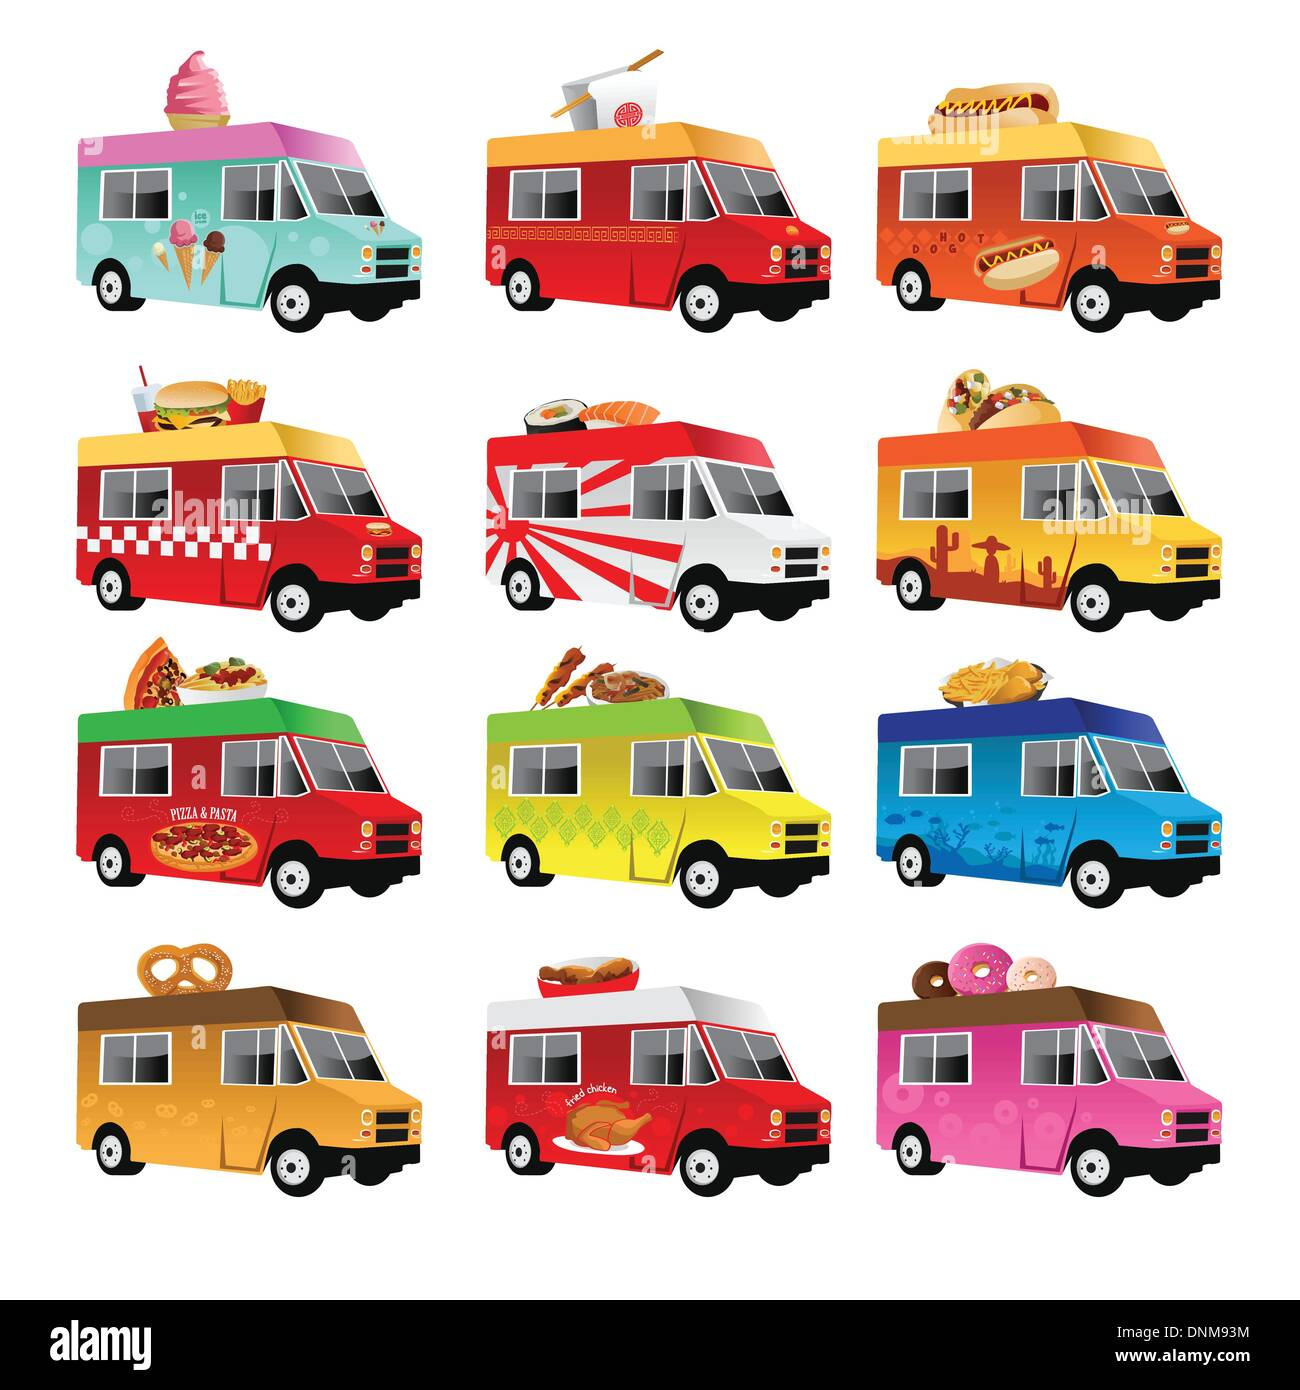 Bank Bloq Van Design On Stock.Taco Truck Stock Photos Taco Truck Stock Images Alamy